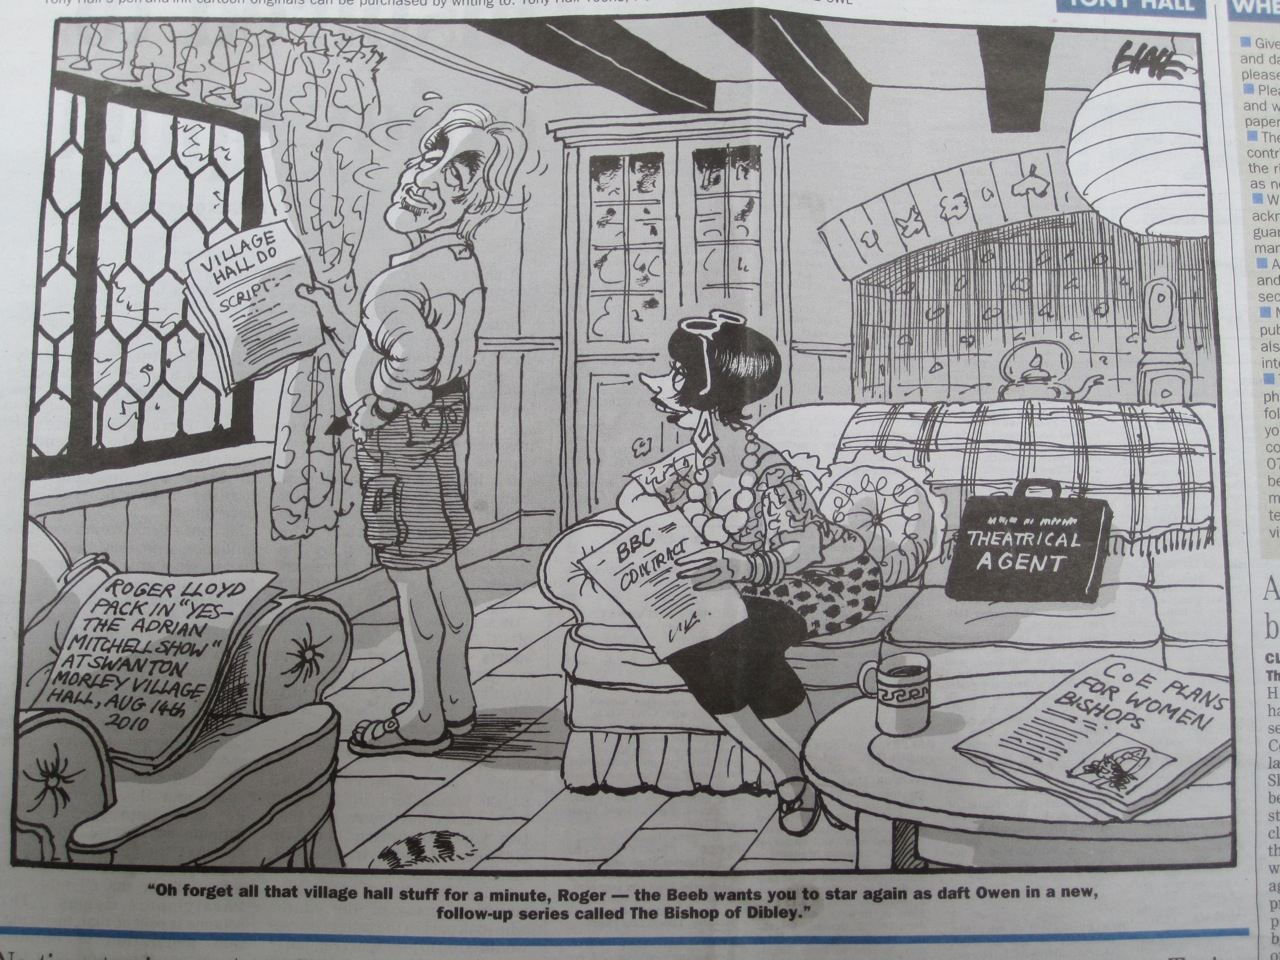 Kentish Town newspaper cartoon about Vicar of Dibley